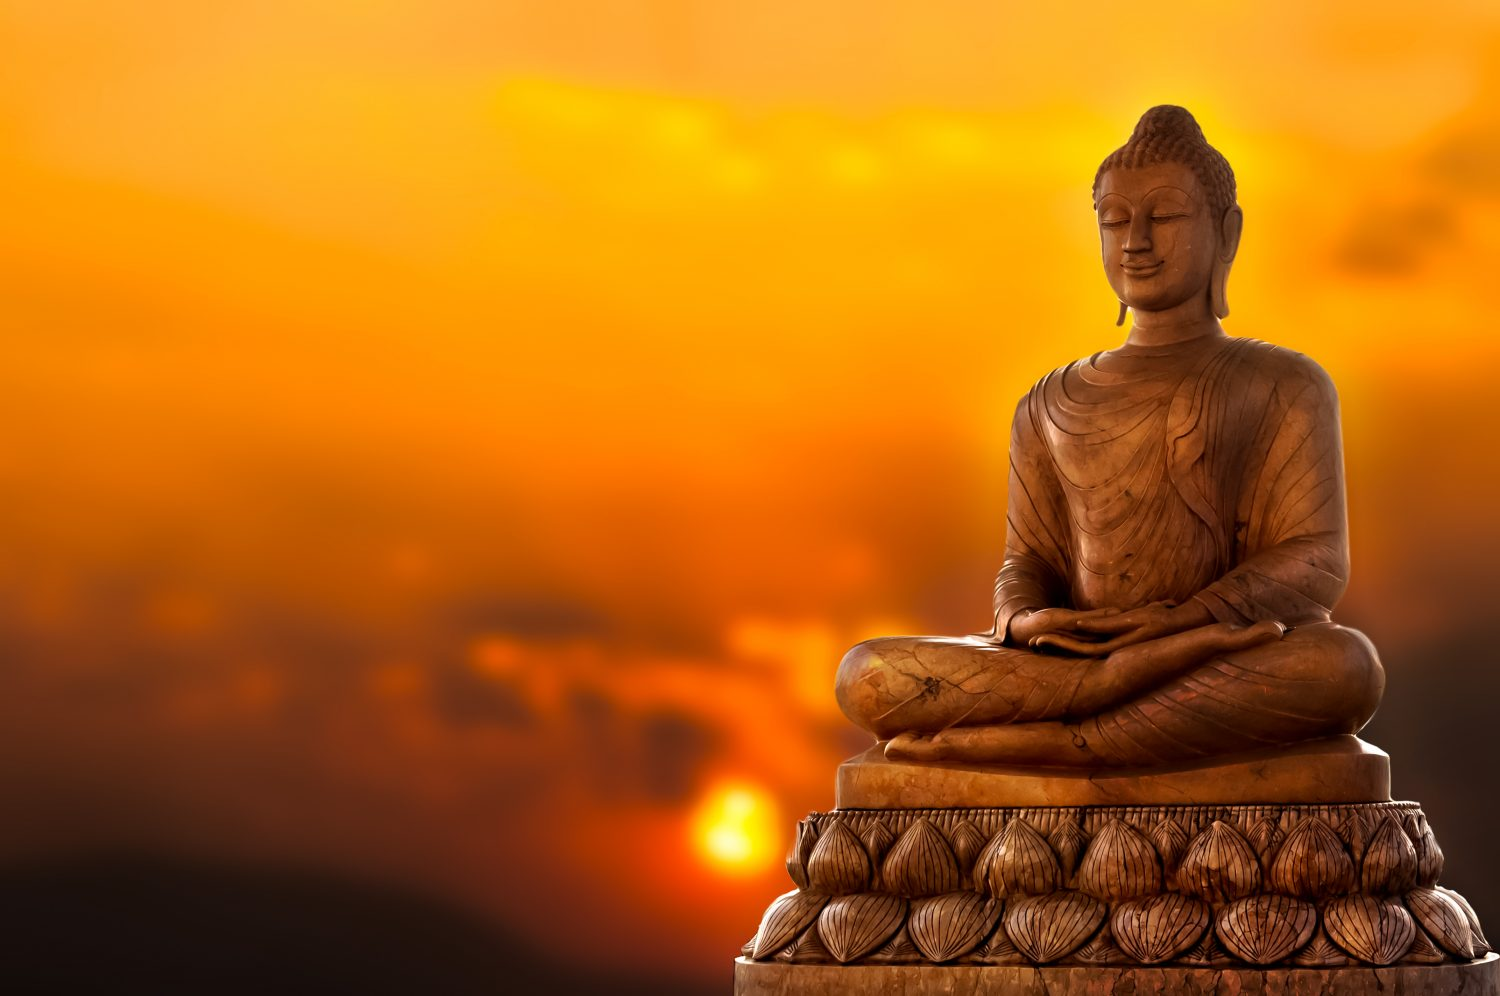 Buddha Did Not Deny the Infallibility of Vedas in its Pure and Original Form